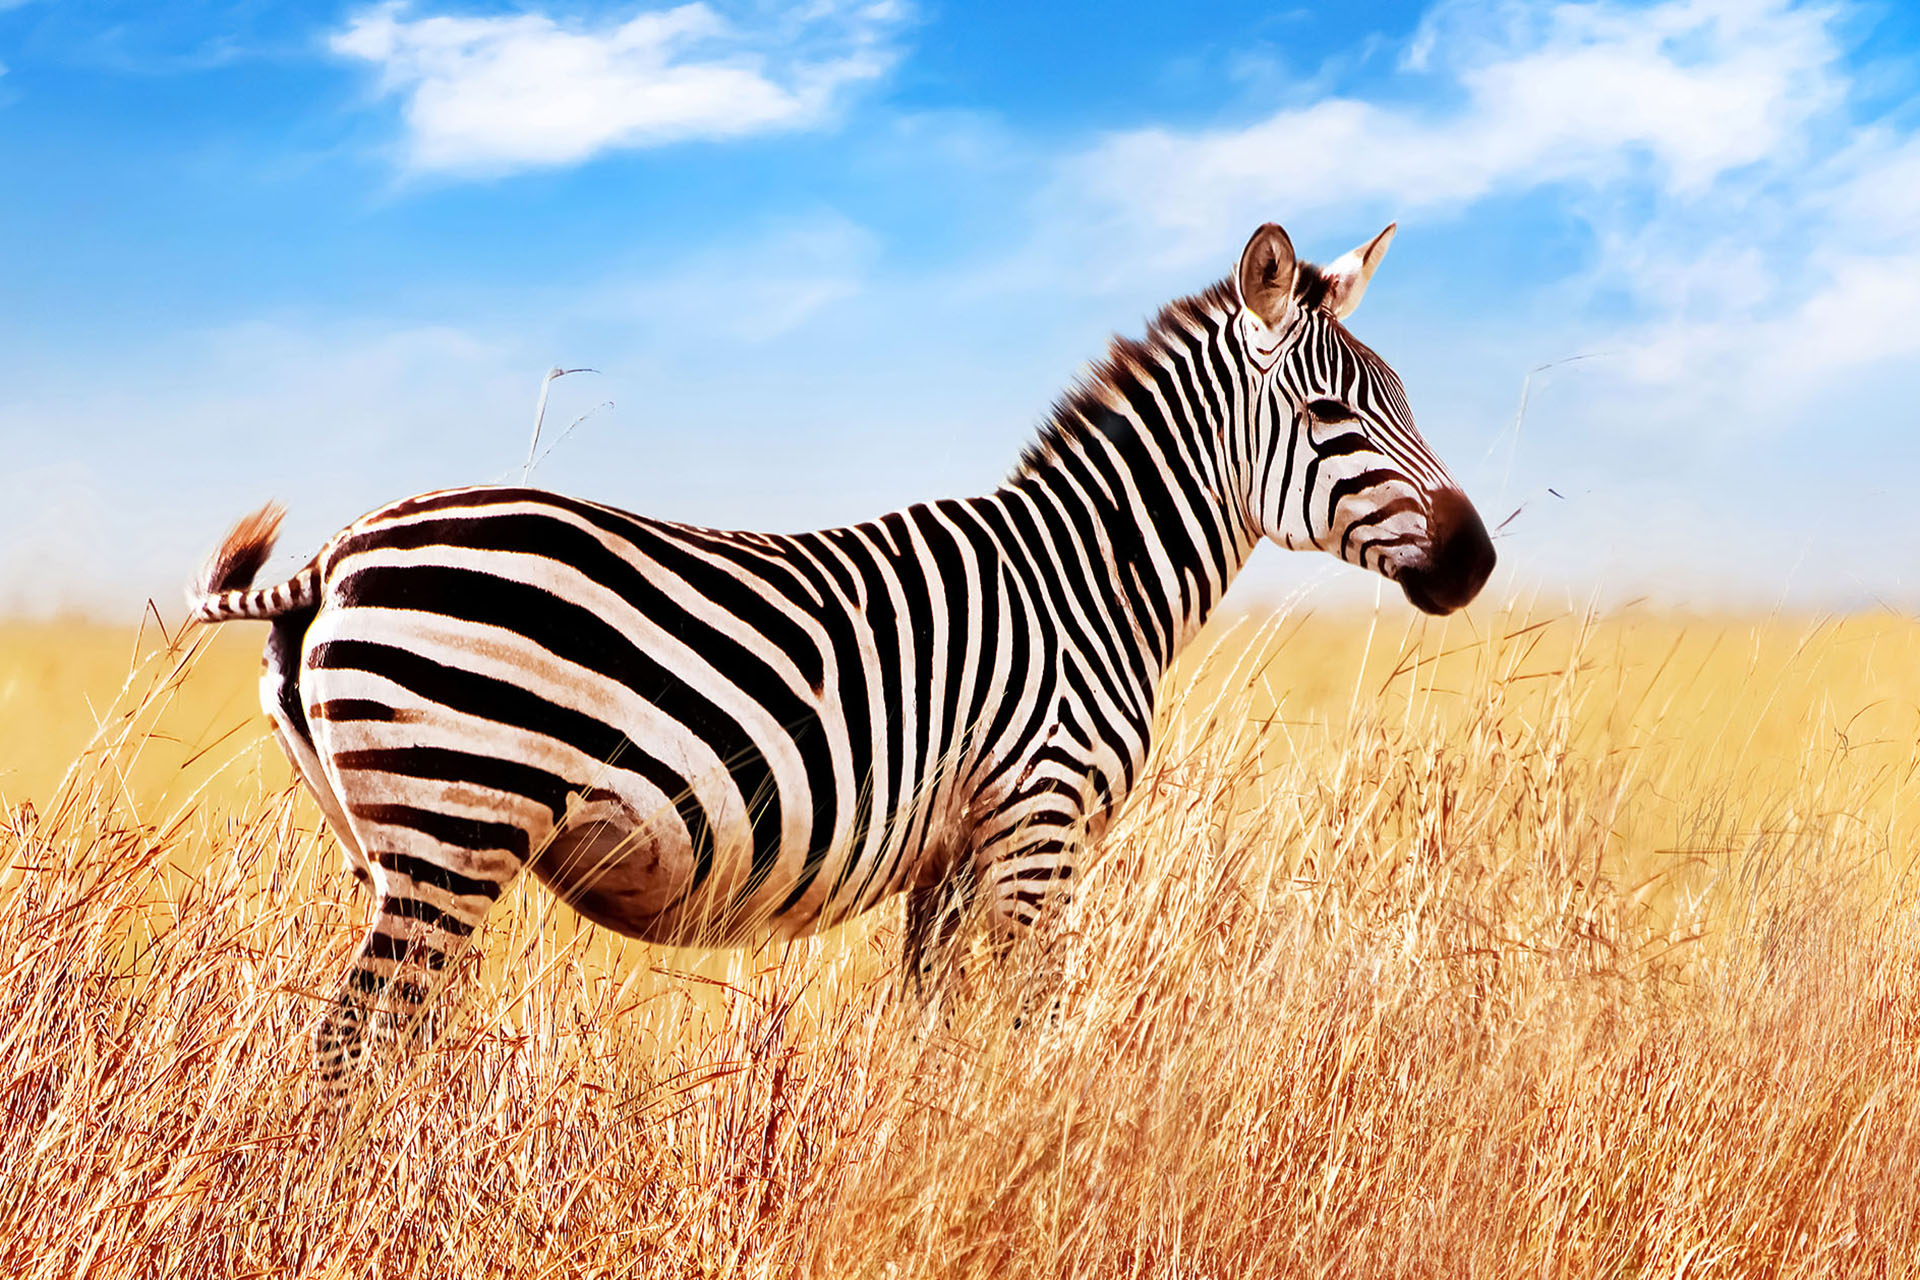 Zebra in the African savannah. Serengeti National Park. Africa. Tanzania. Wide format.